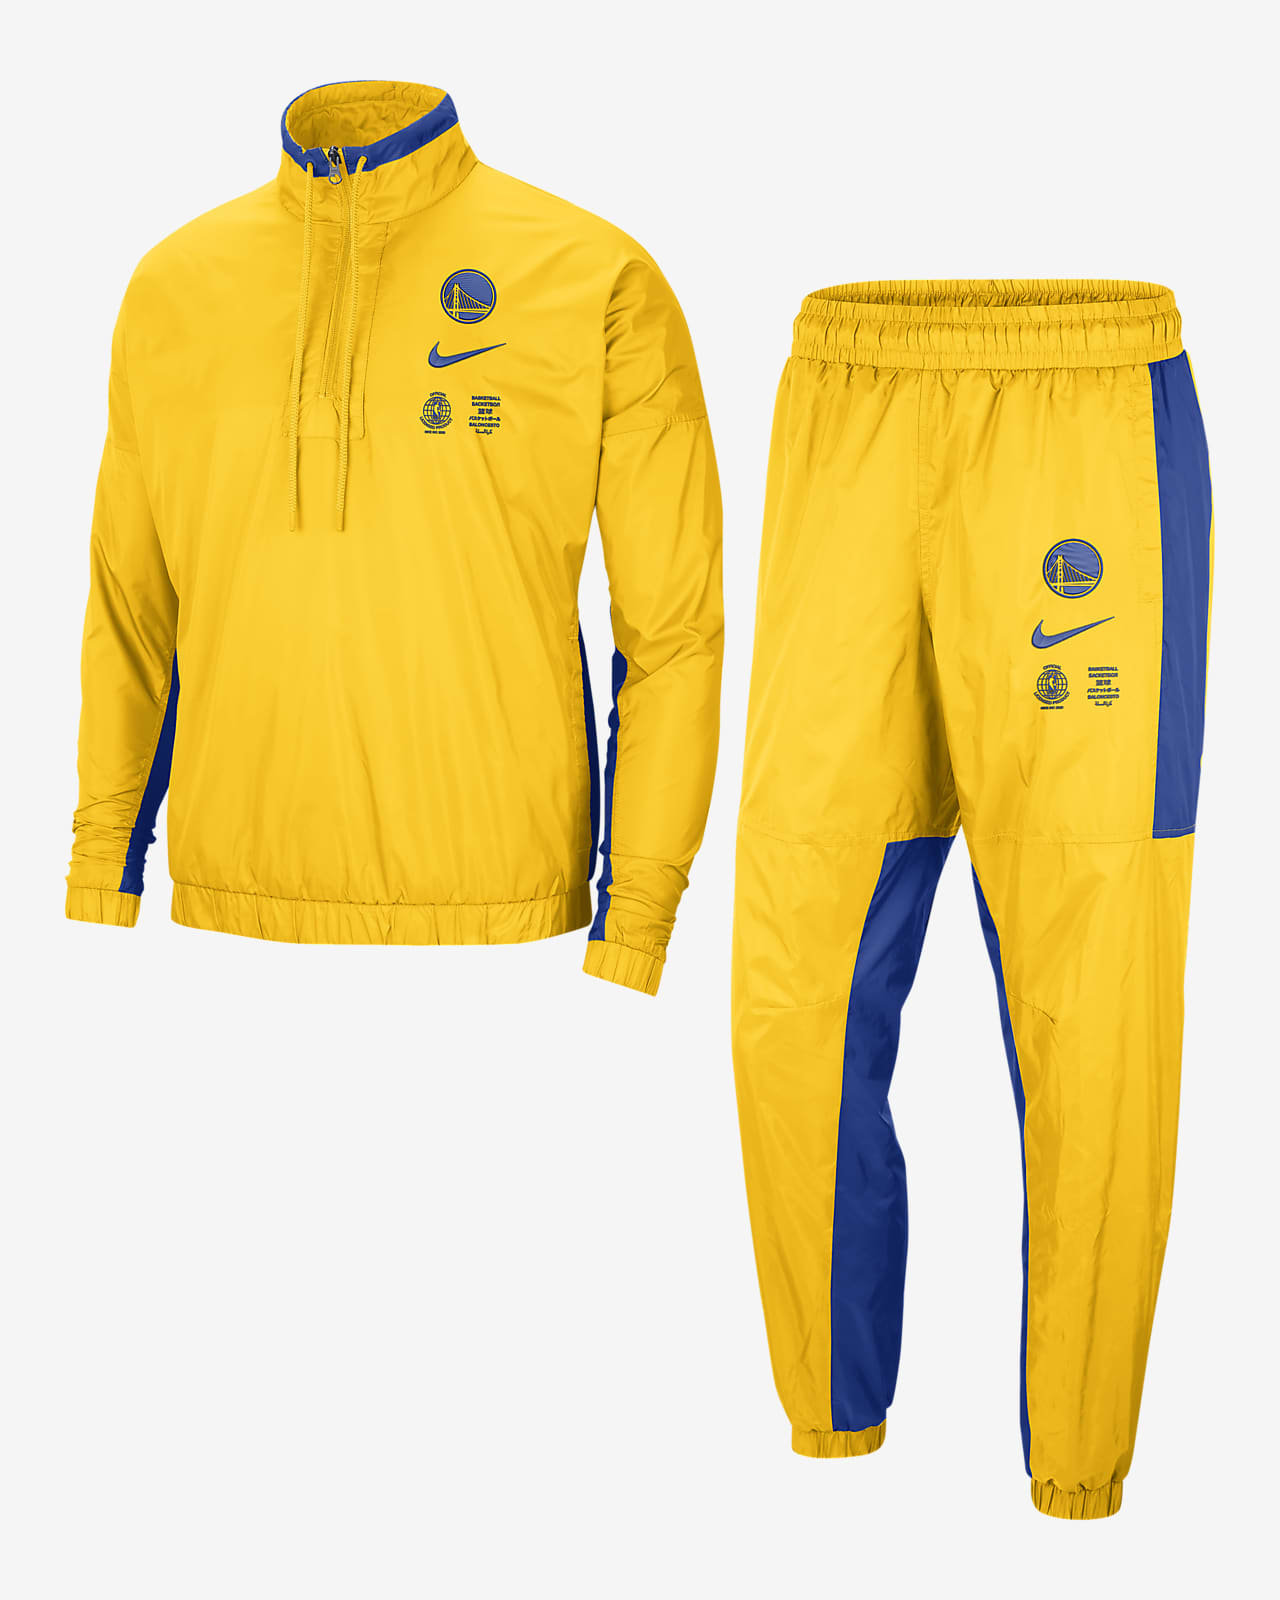 Conjunto de entrenamiento Nike NBA para hombre Golden State Warriors Nike Courtside